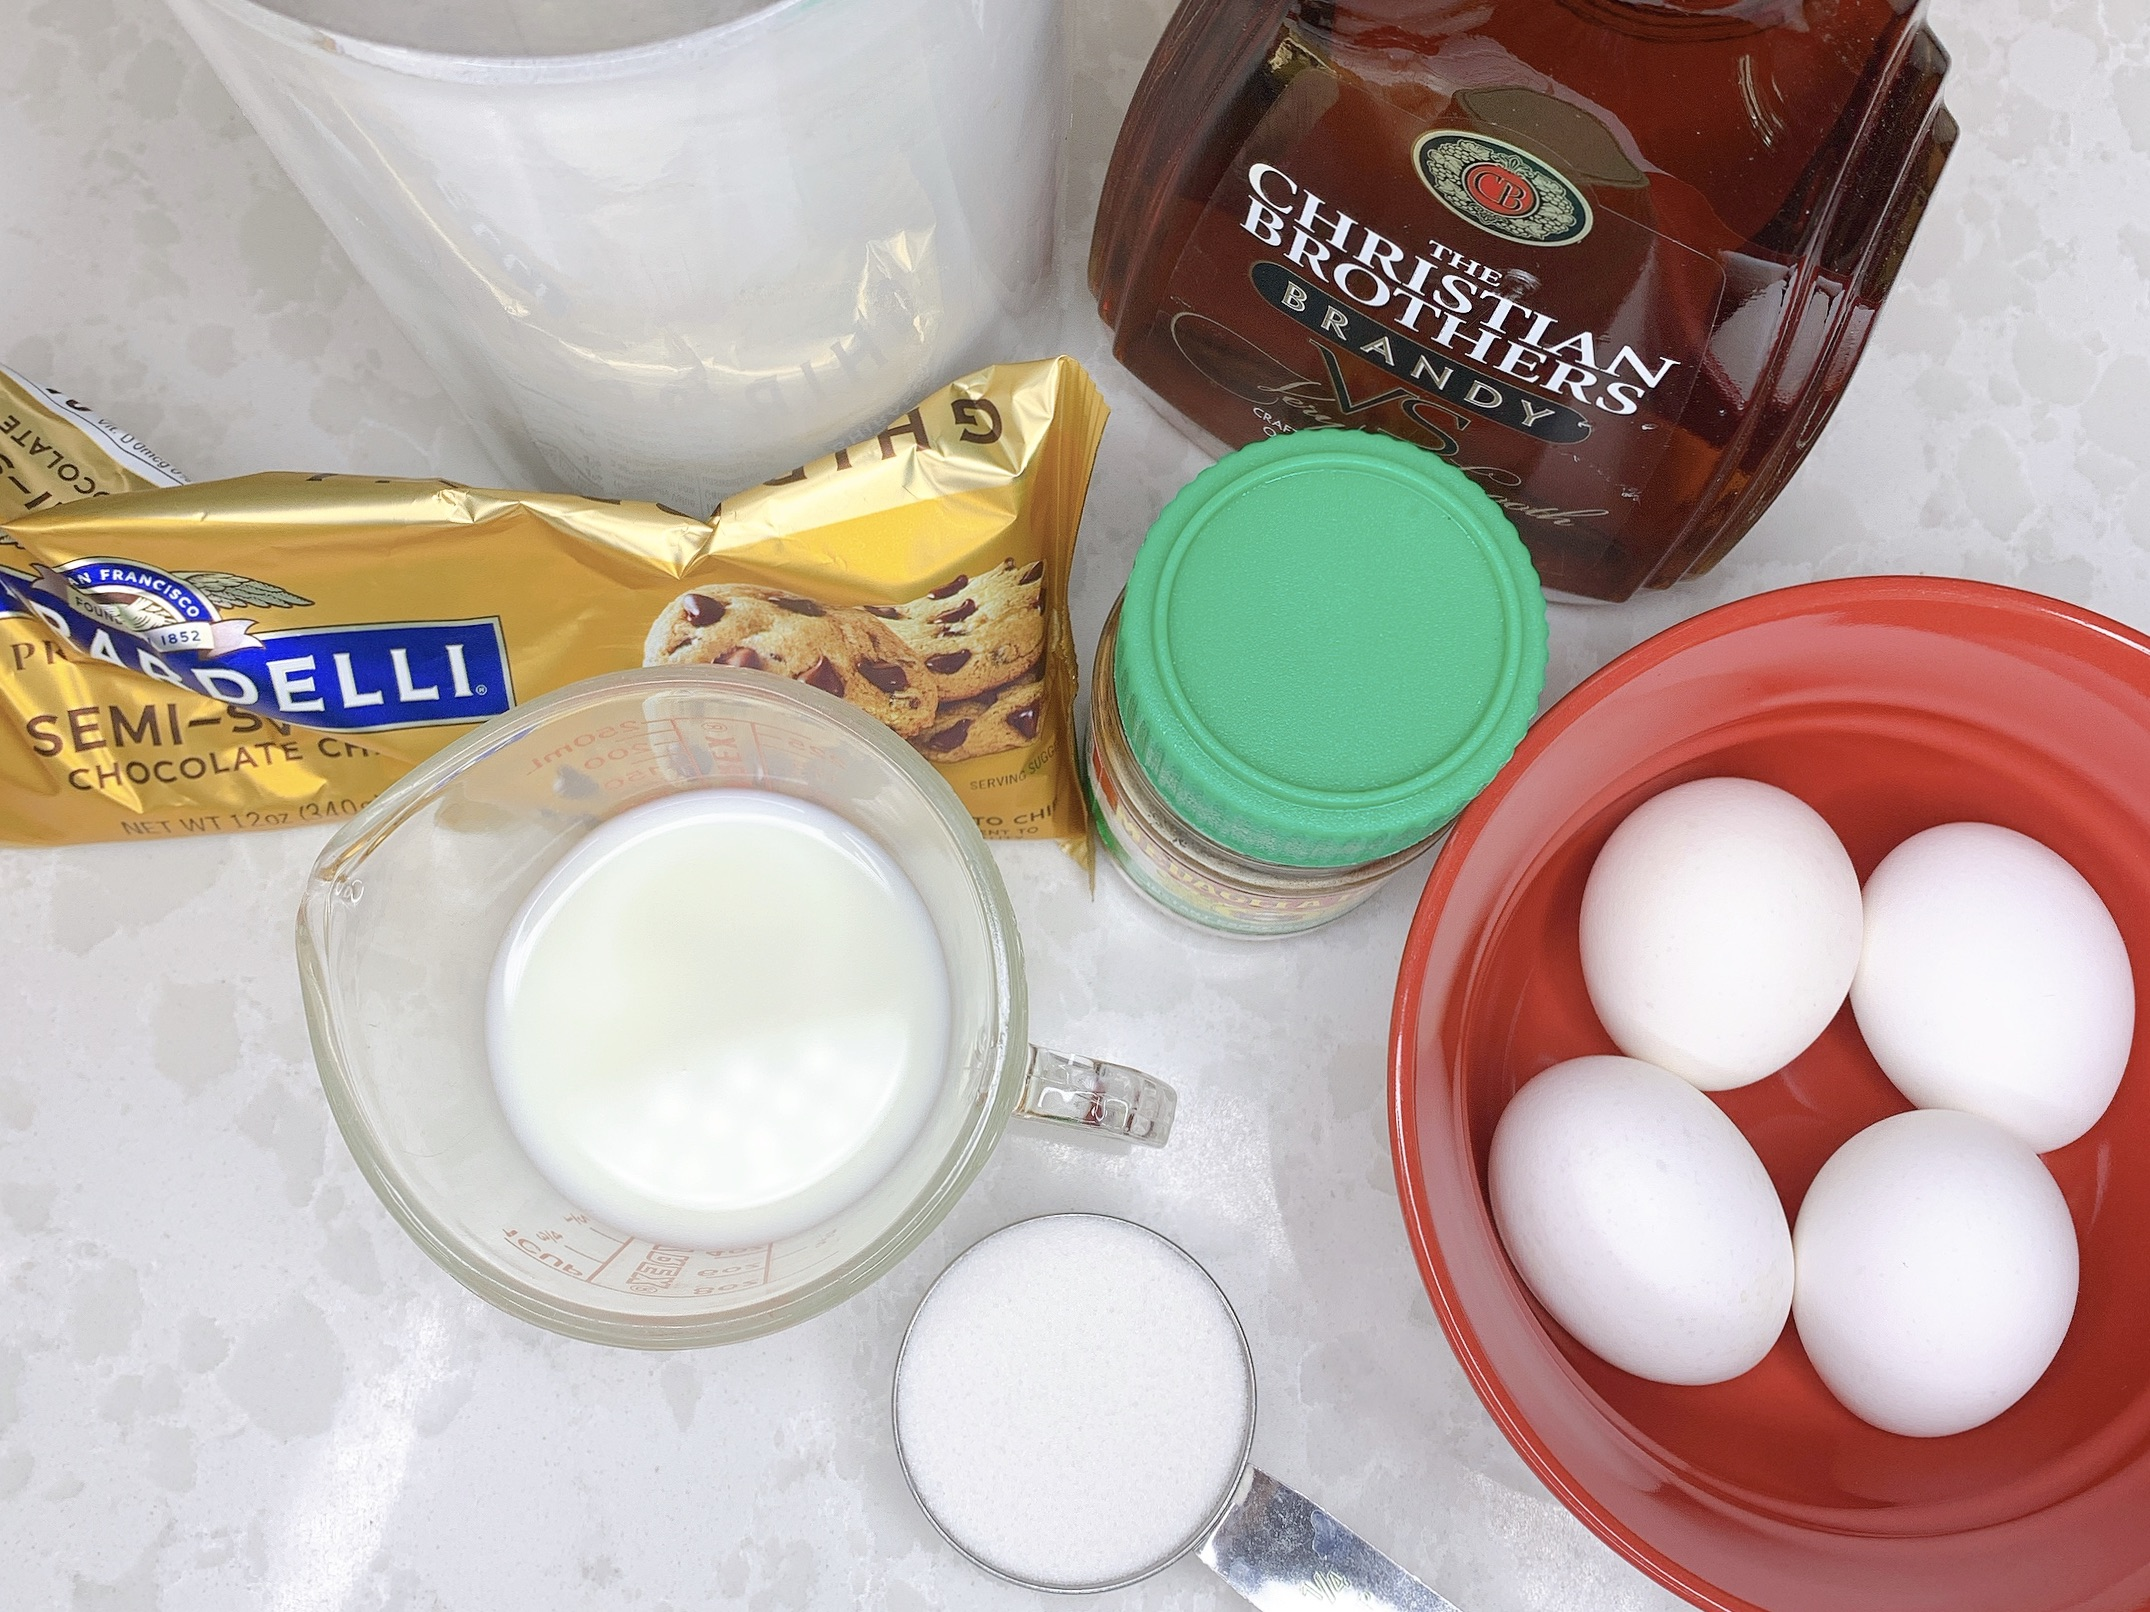 ingredients to make chocolate mousse with brandy